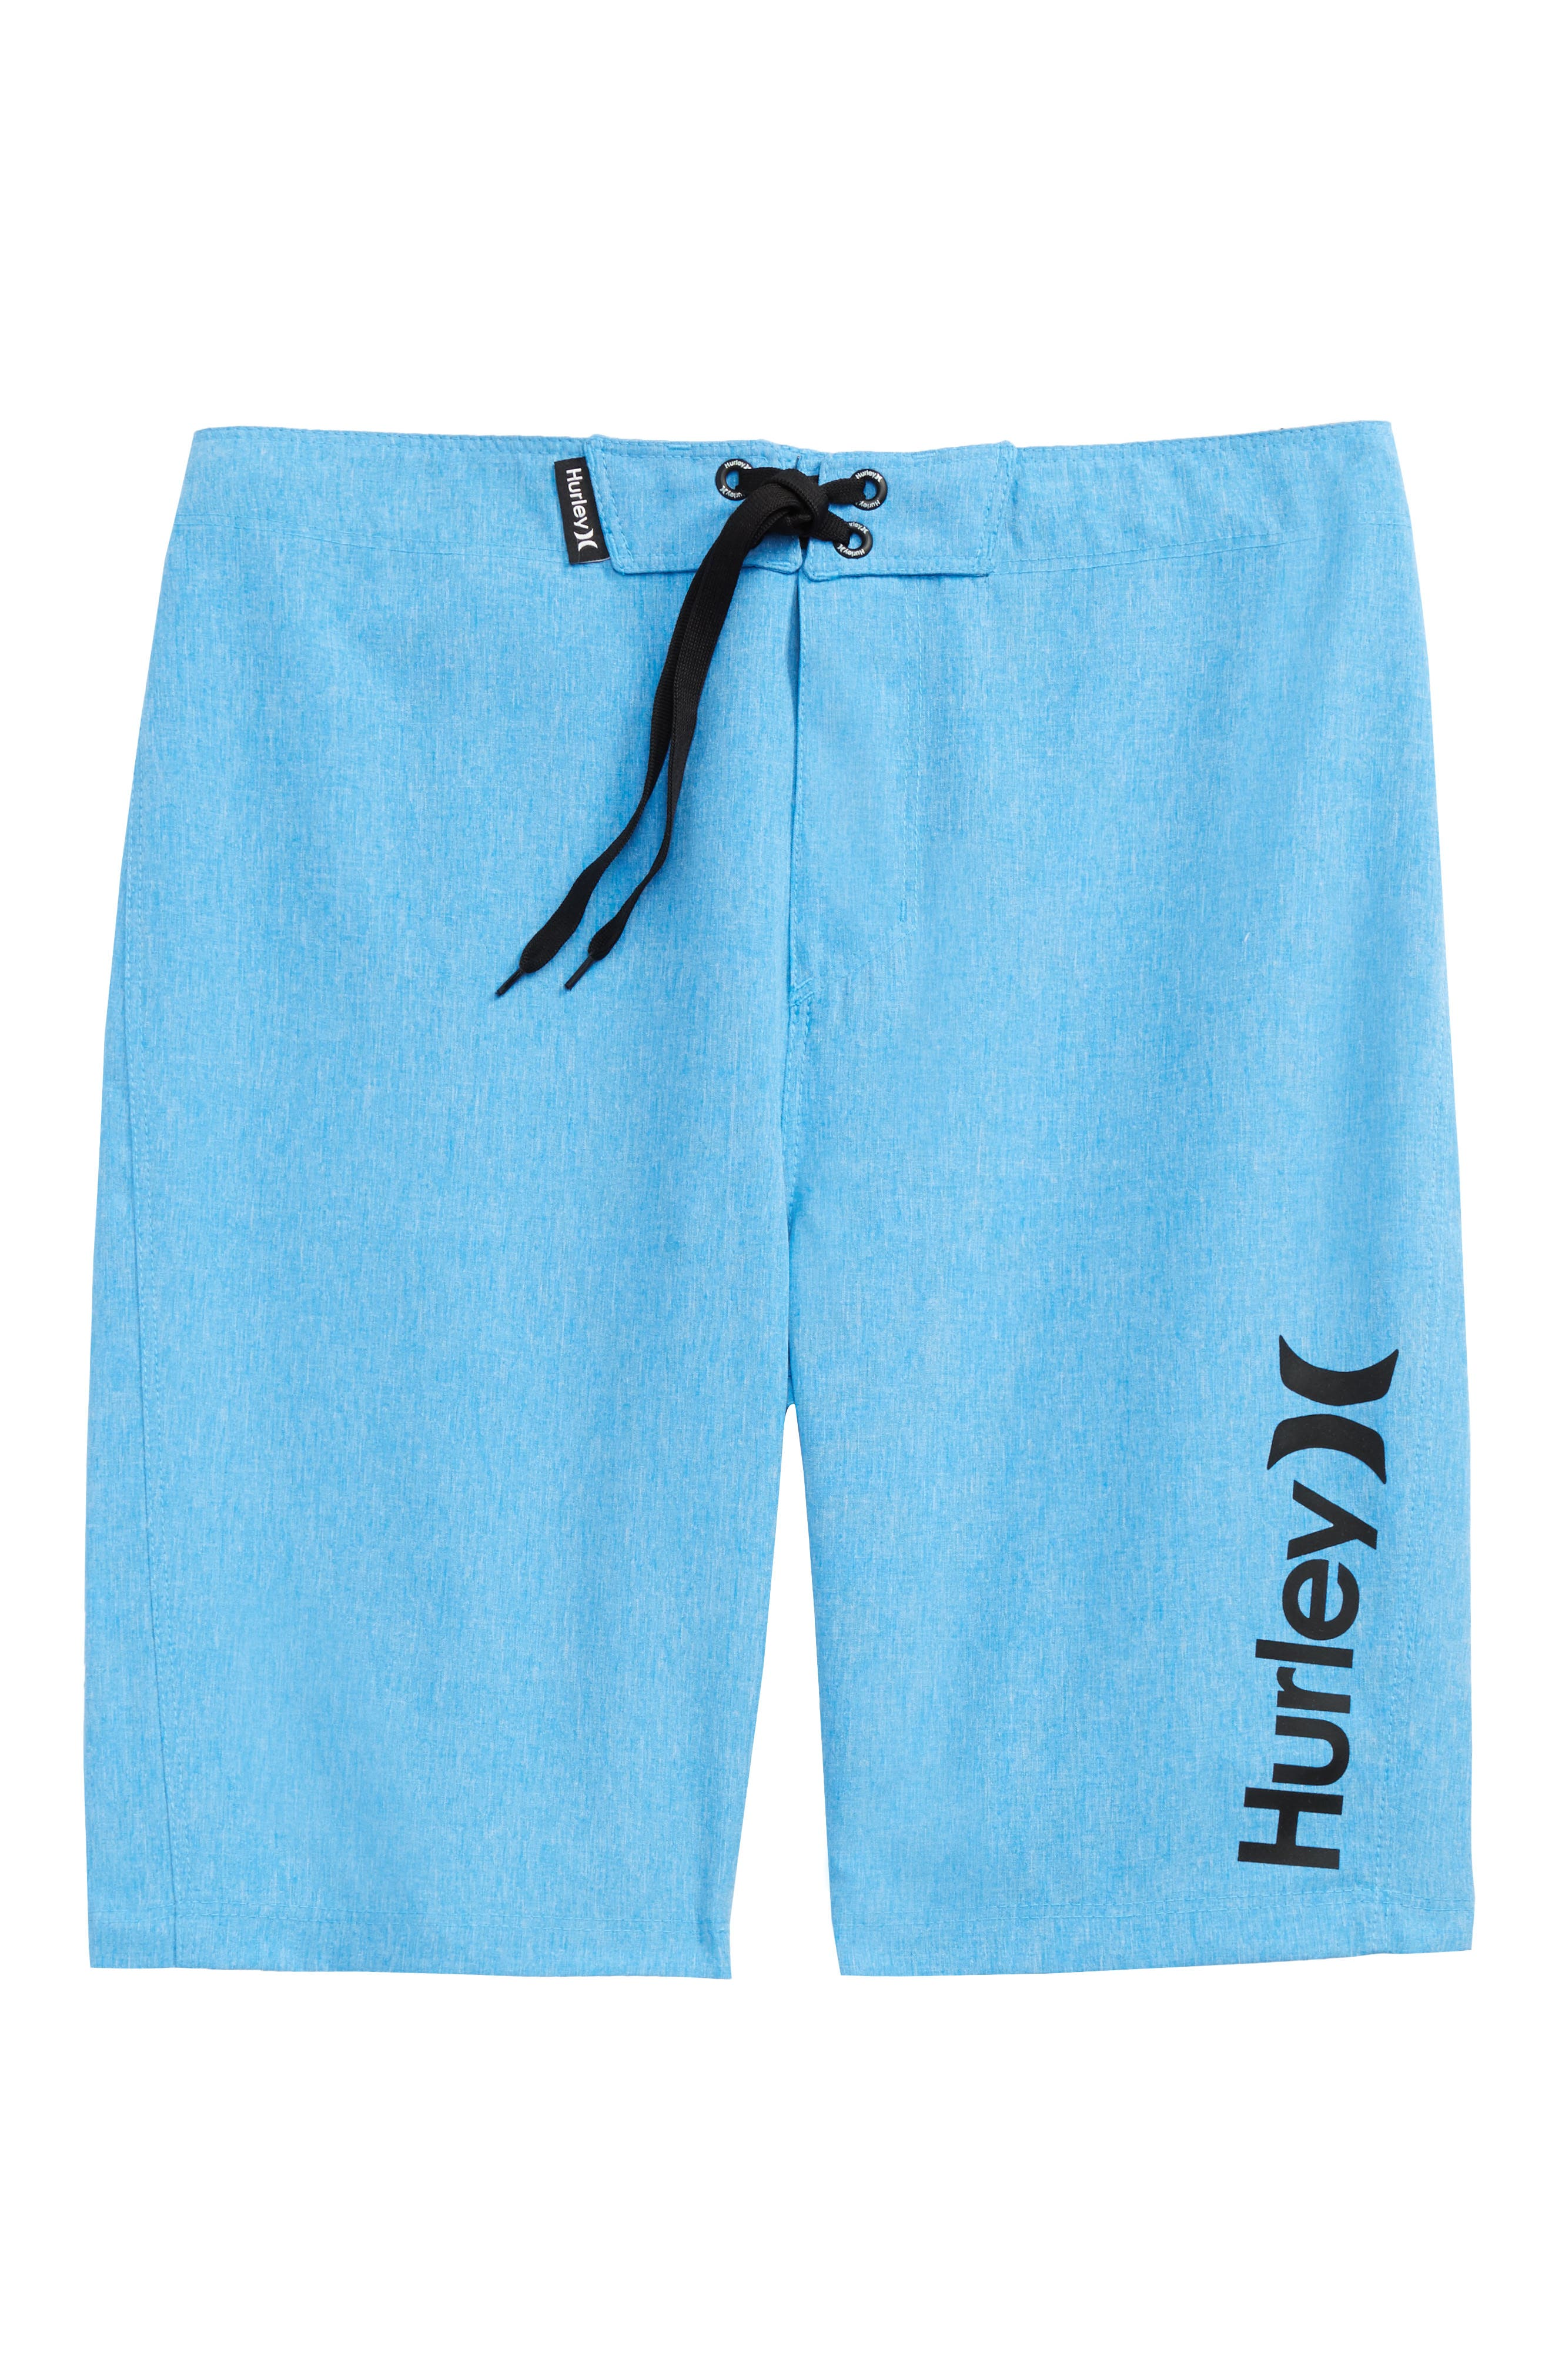 Hurley One and Only Dri-FIT Board Shorts (Big Boys)